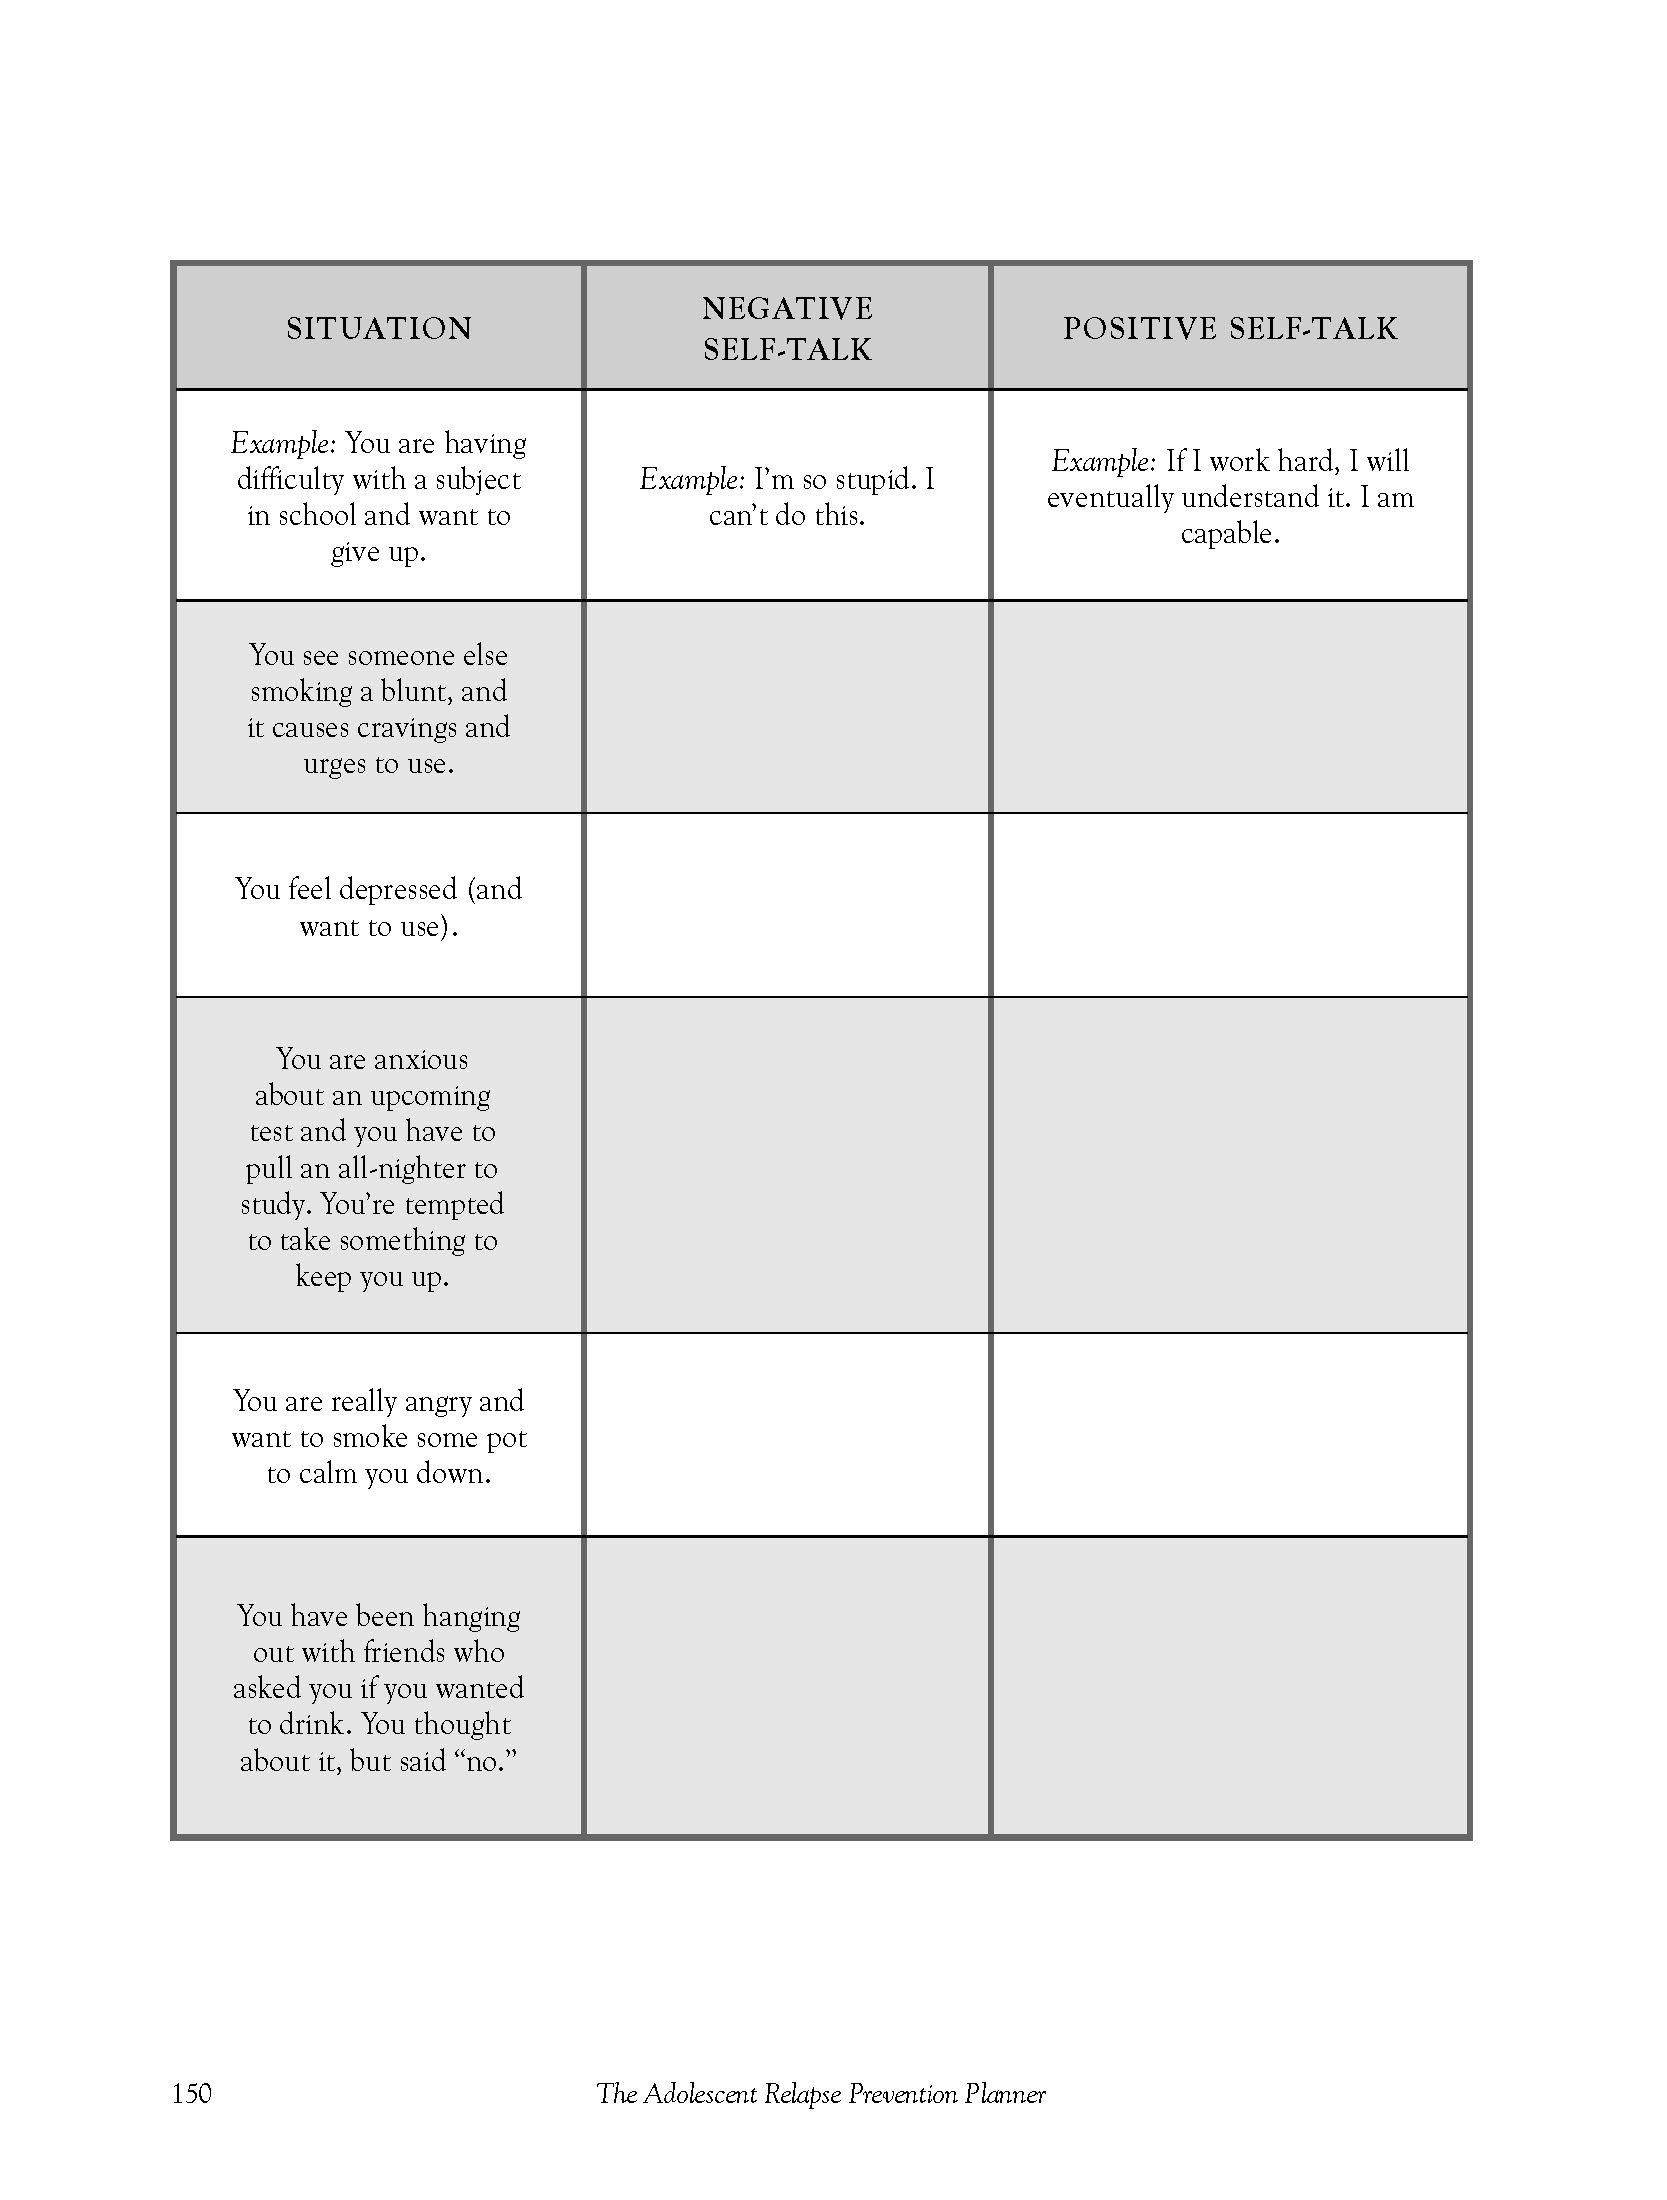 A Multi Use Exercise Worksheet On Self Talking Taken From The Adolescent Relapse